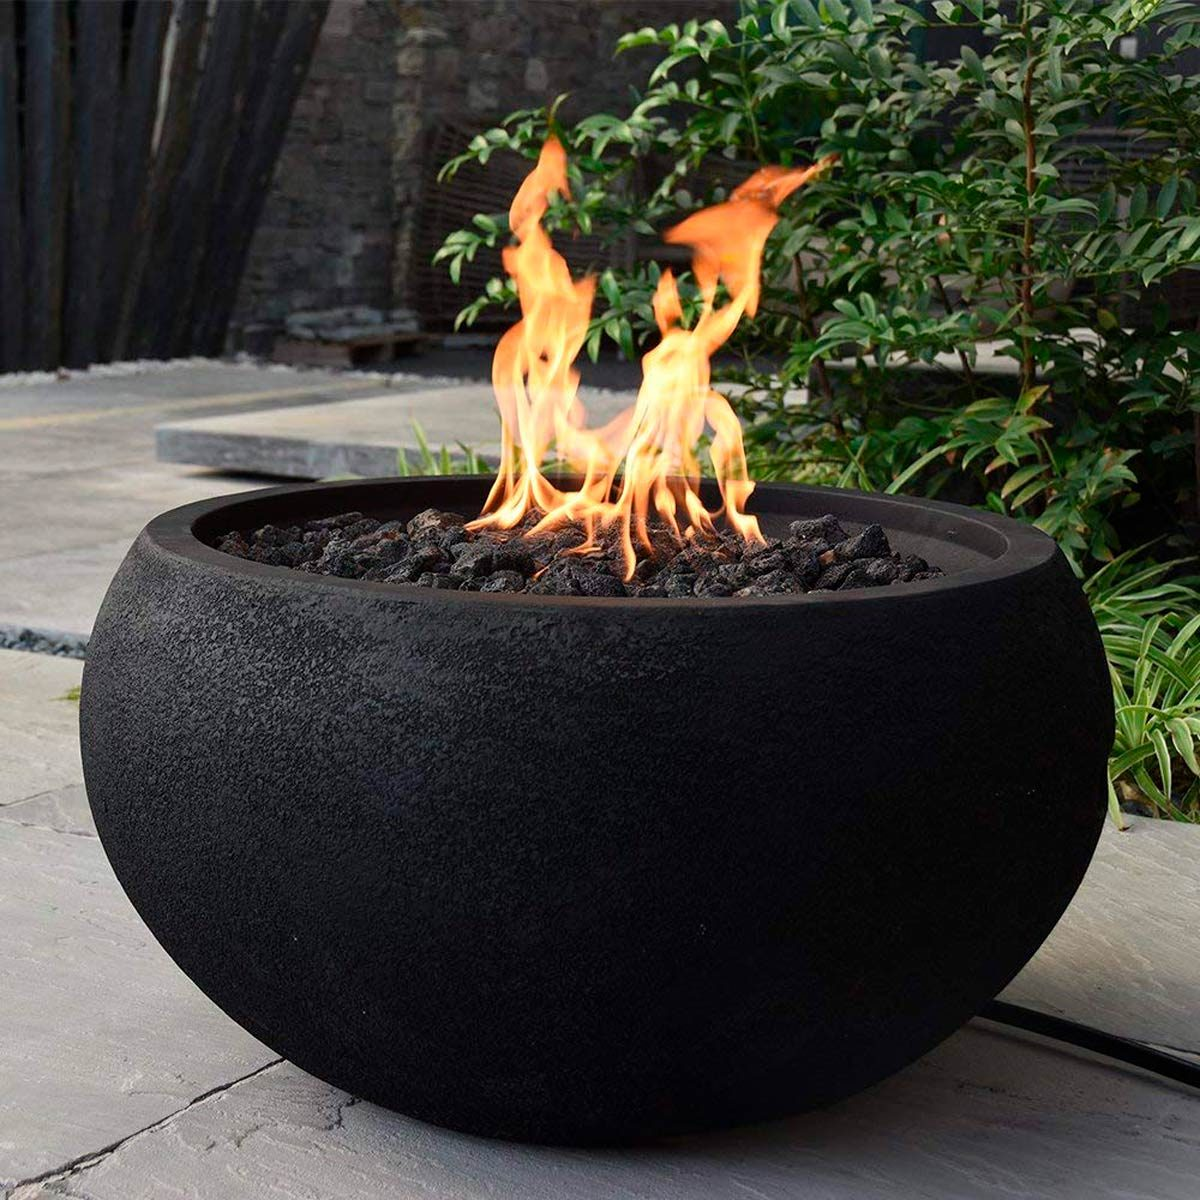 10 Really Cool Gas Fire Pits For Your Backyard Propane